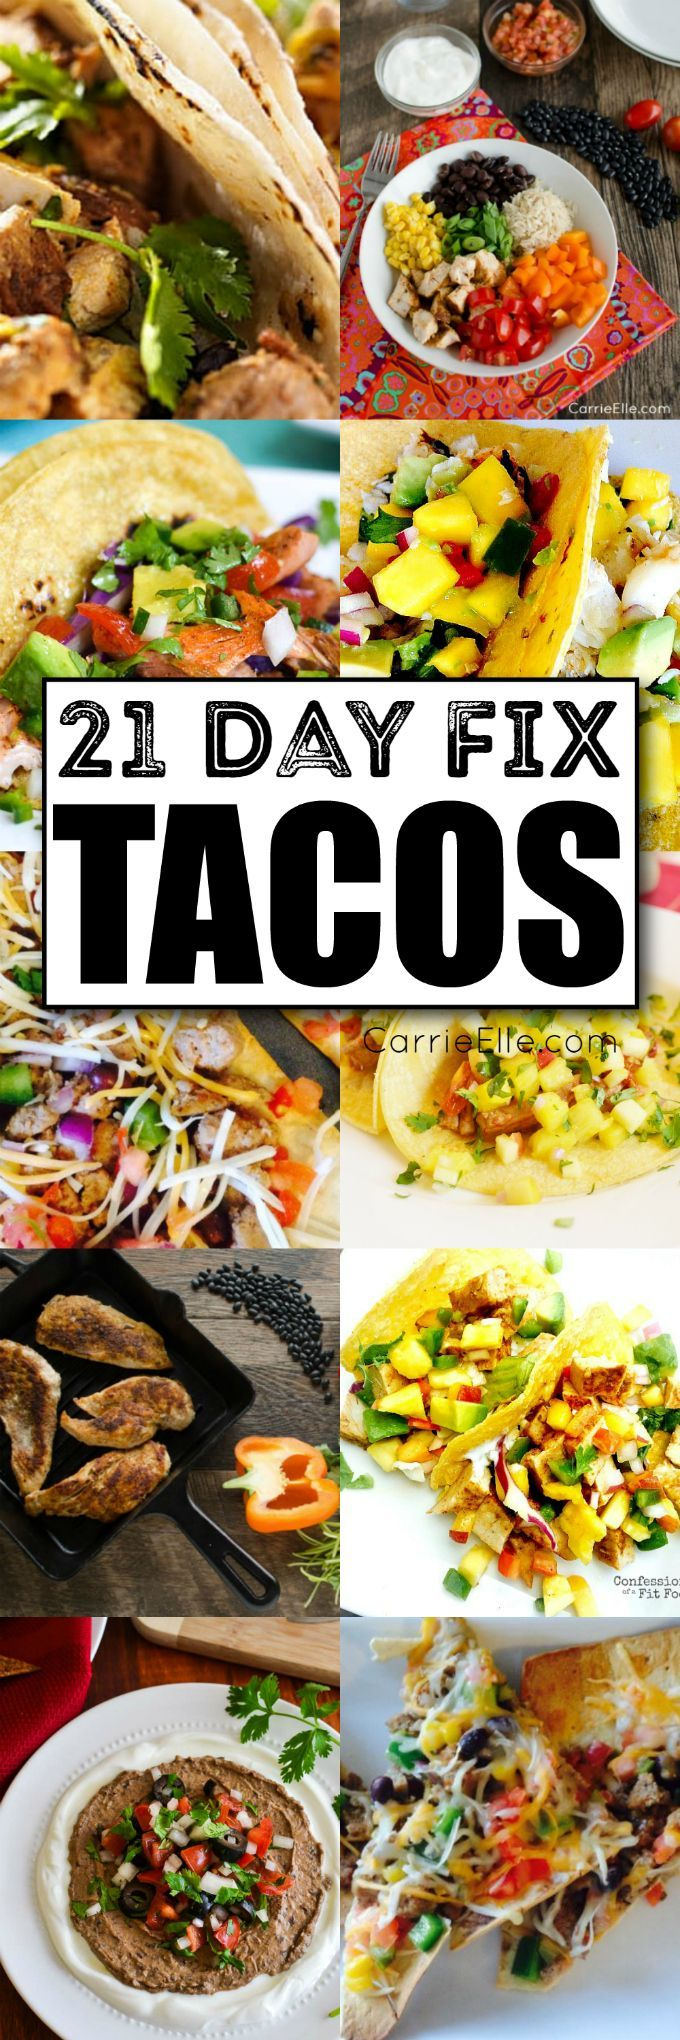 21 Day Fix Taco Recipes via @carrieelleblog